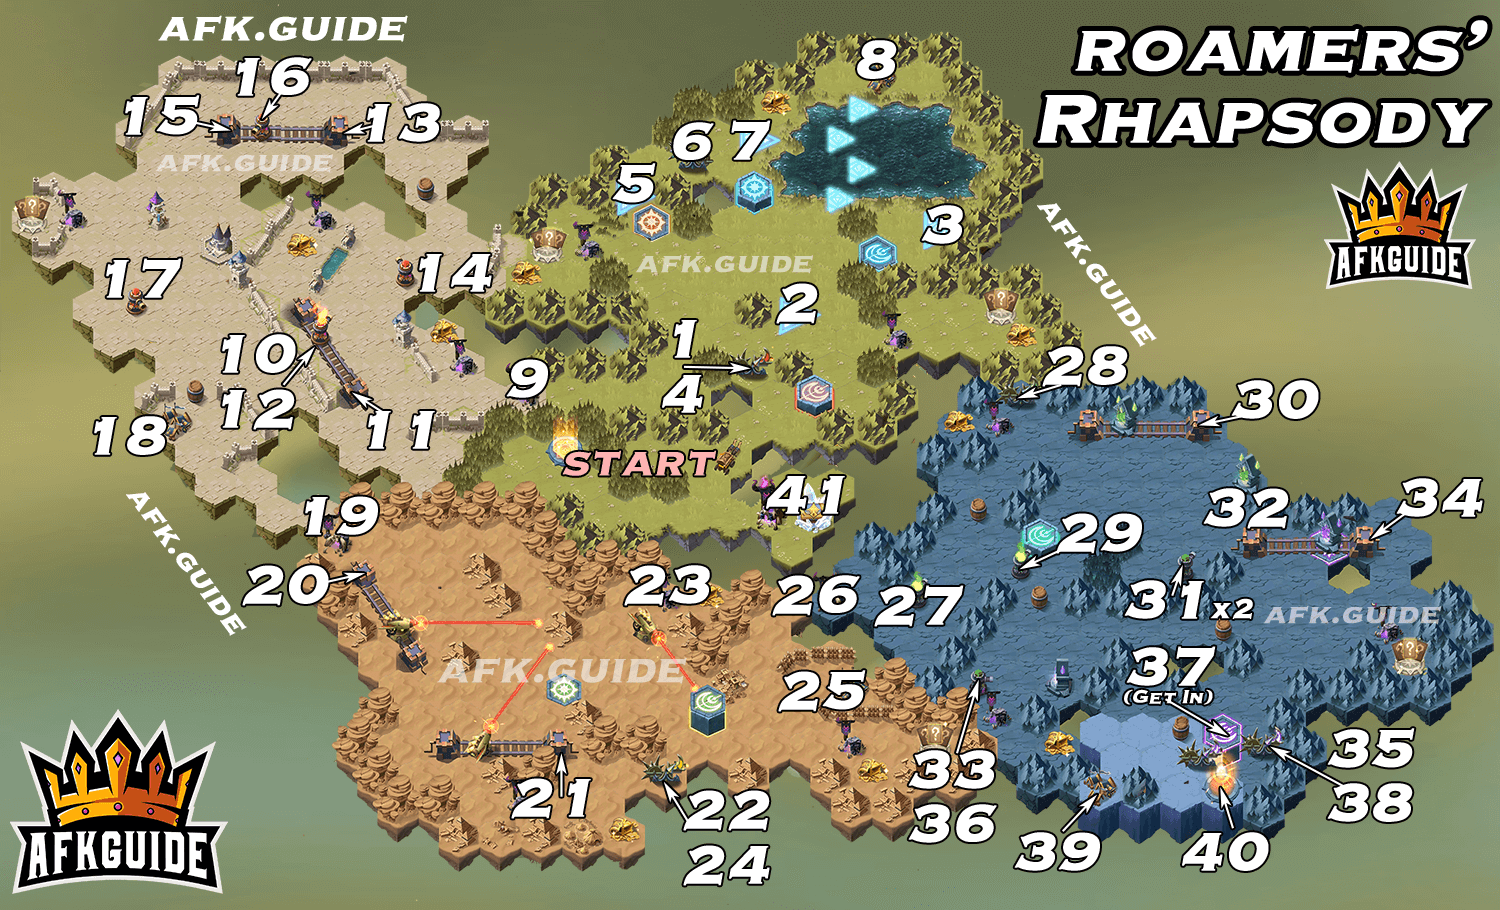 roamers rhapsody map guide